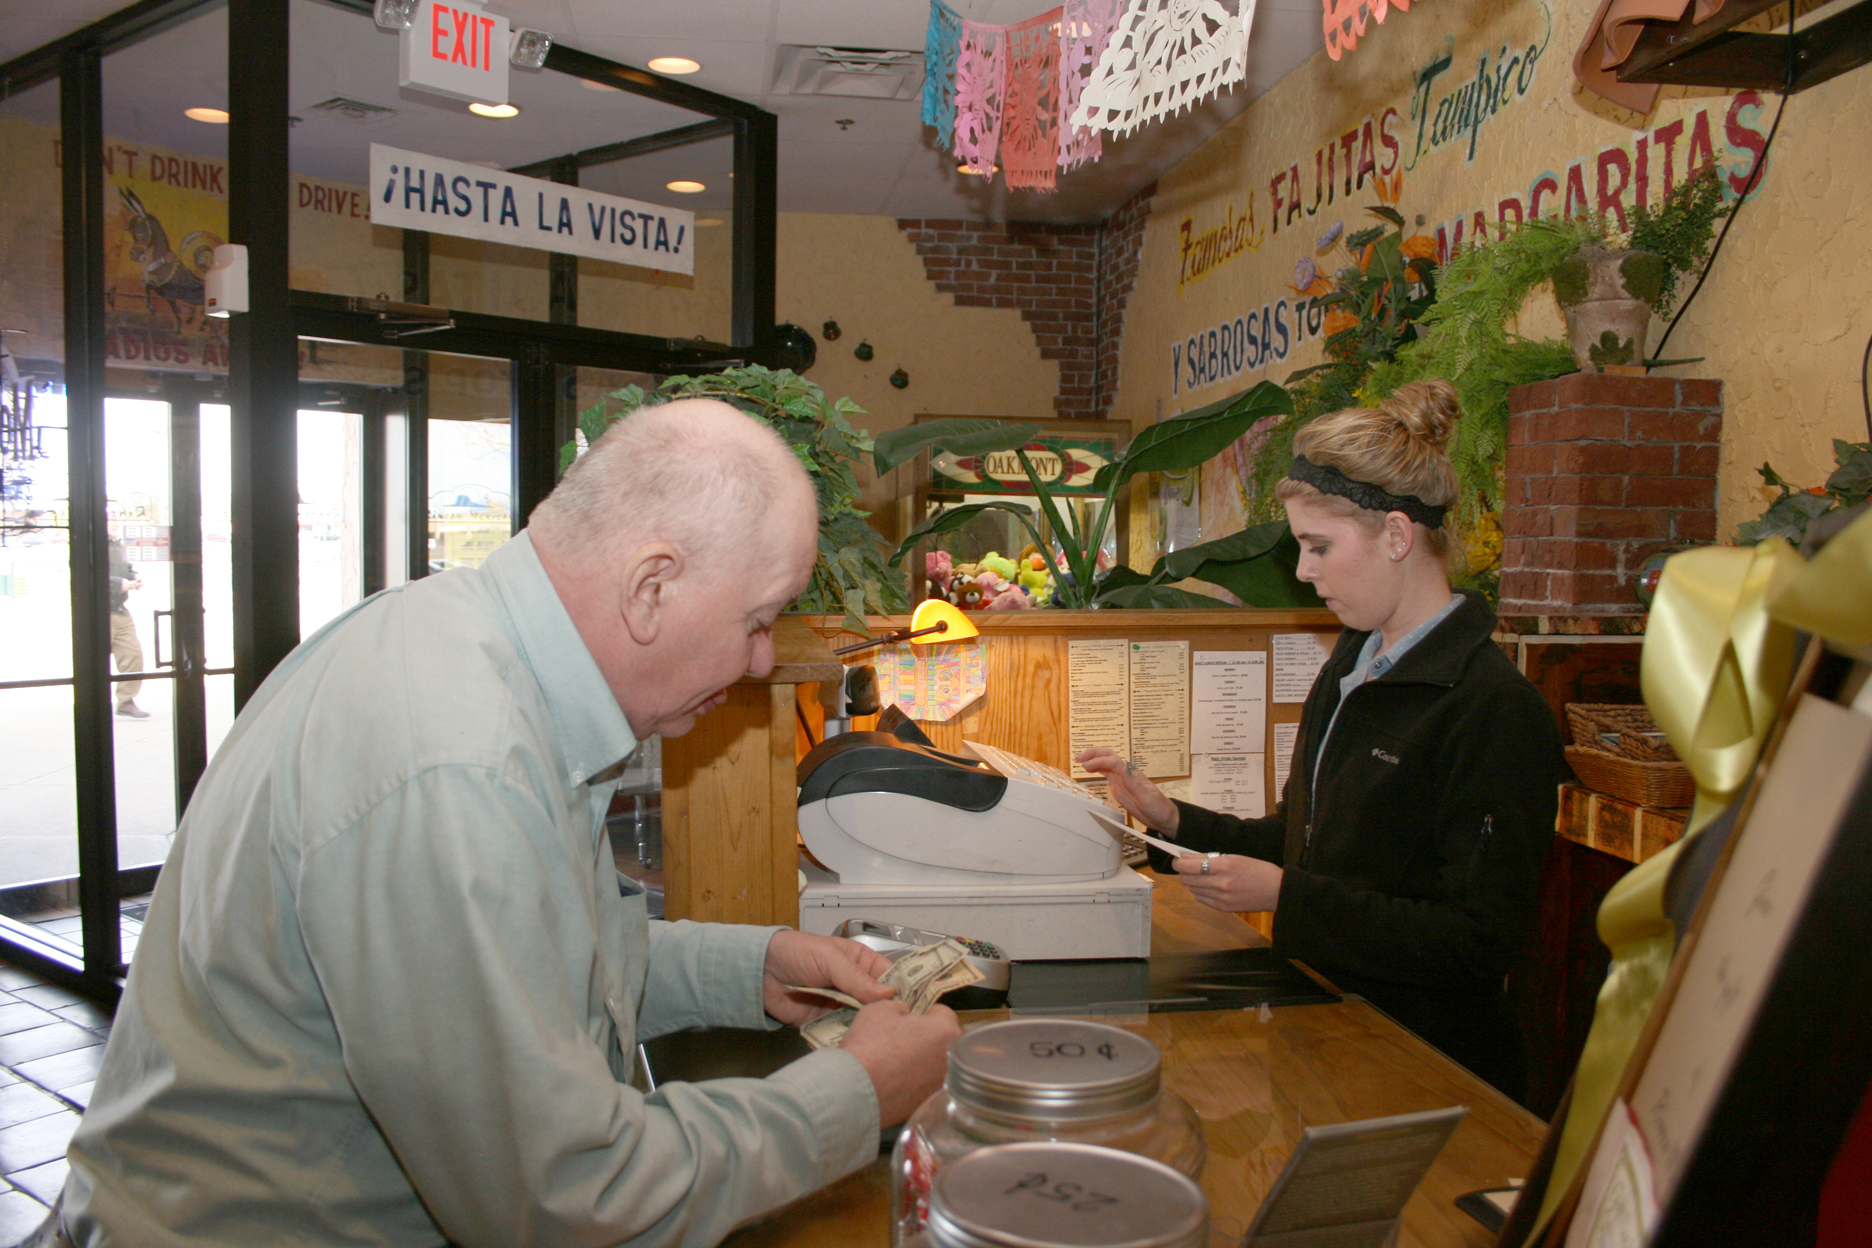 Marty Rains of Bethel chats with the hostess at Rincon Mexicano Restaurant in Eastgate.  Rains and other individuals from CCDD had dinner at Rincon after one of their PRIME training classes, in an effort to use skills they learned in class to promote independence while practicing employment skills.